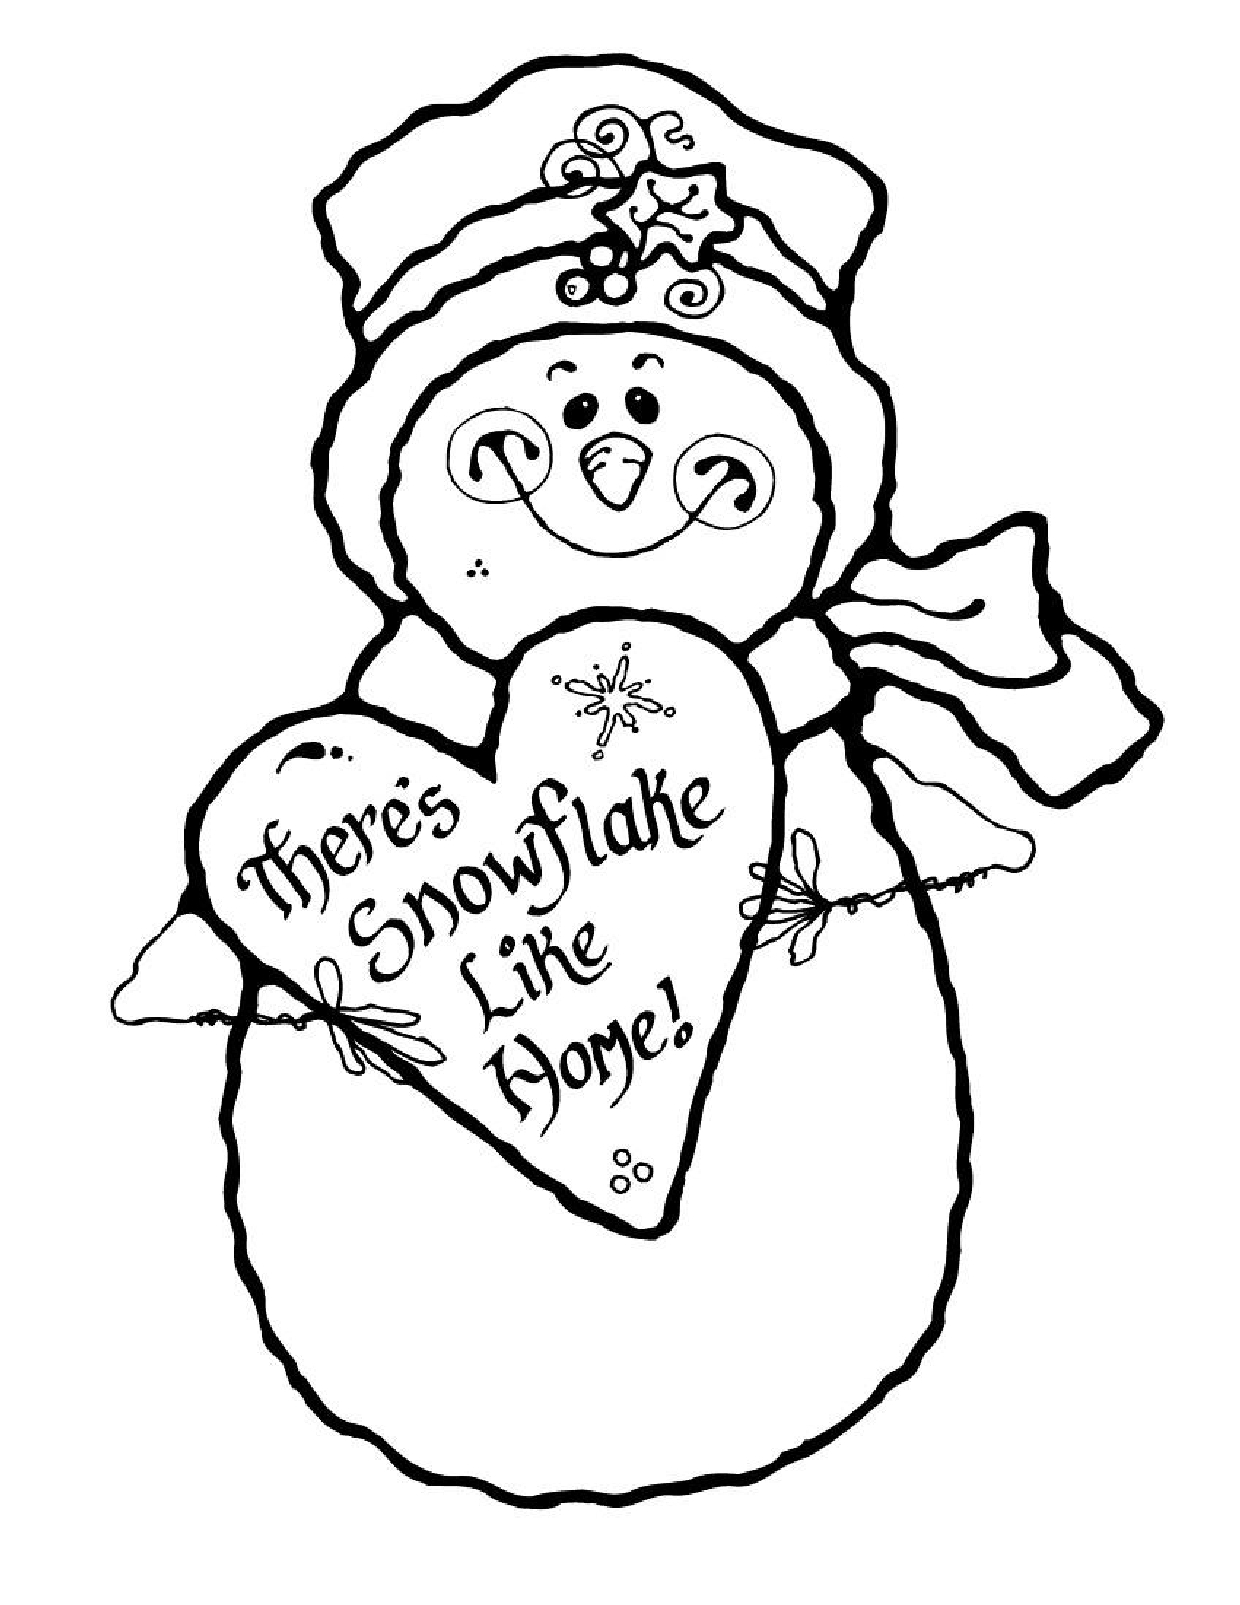 Winter Coloring Pages For Kids at GetDrawings.com | Free for ...